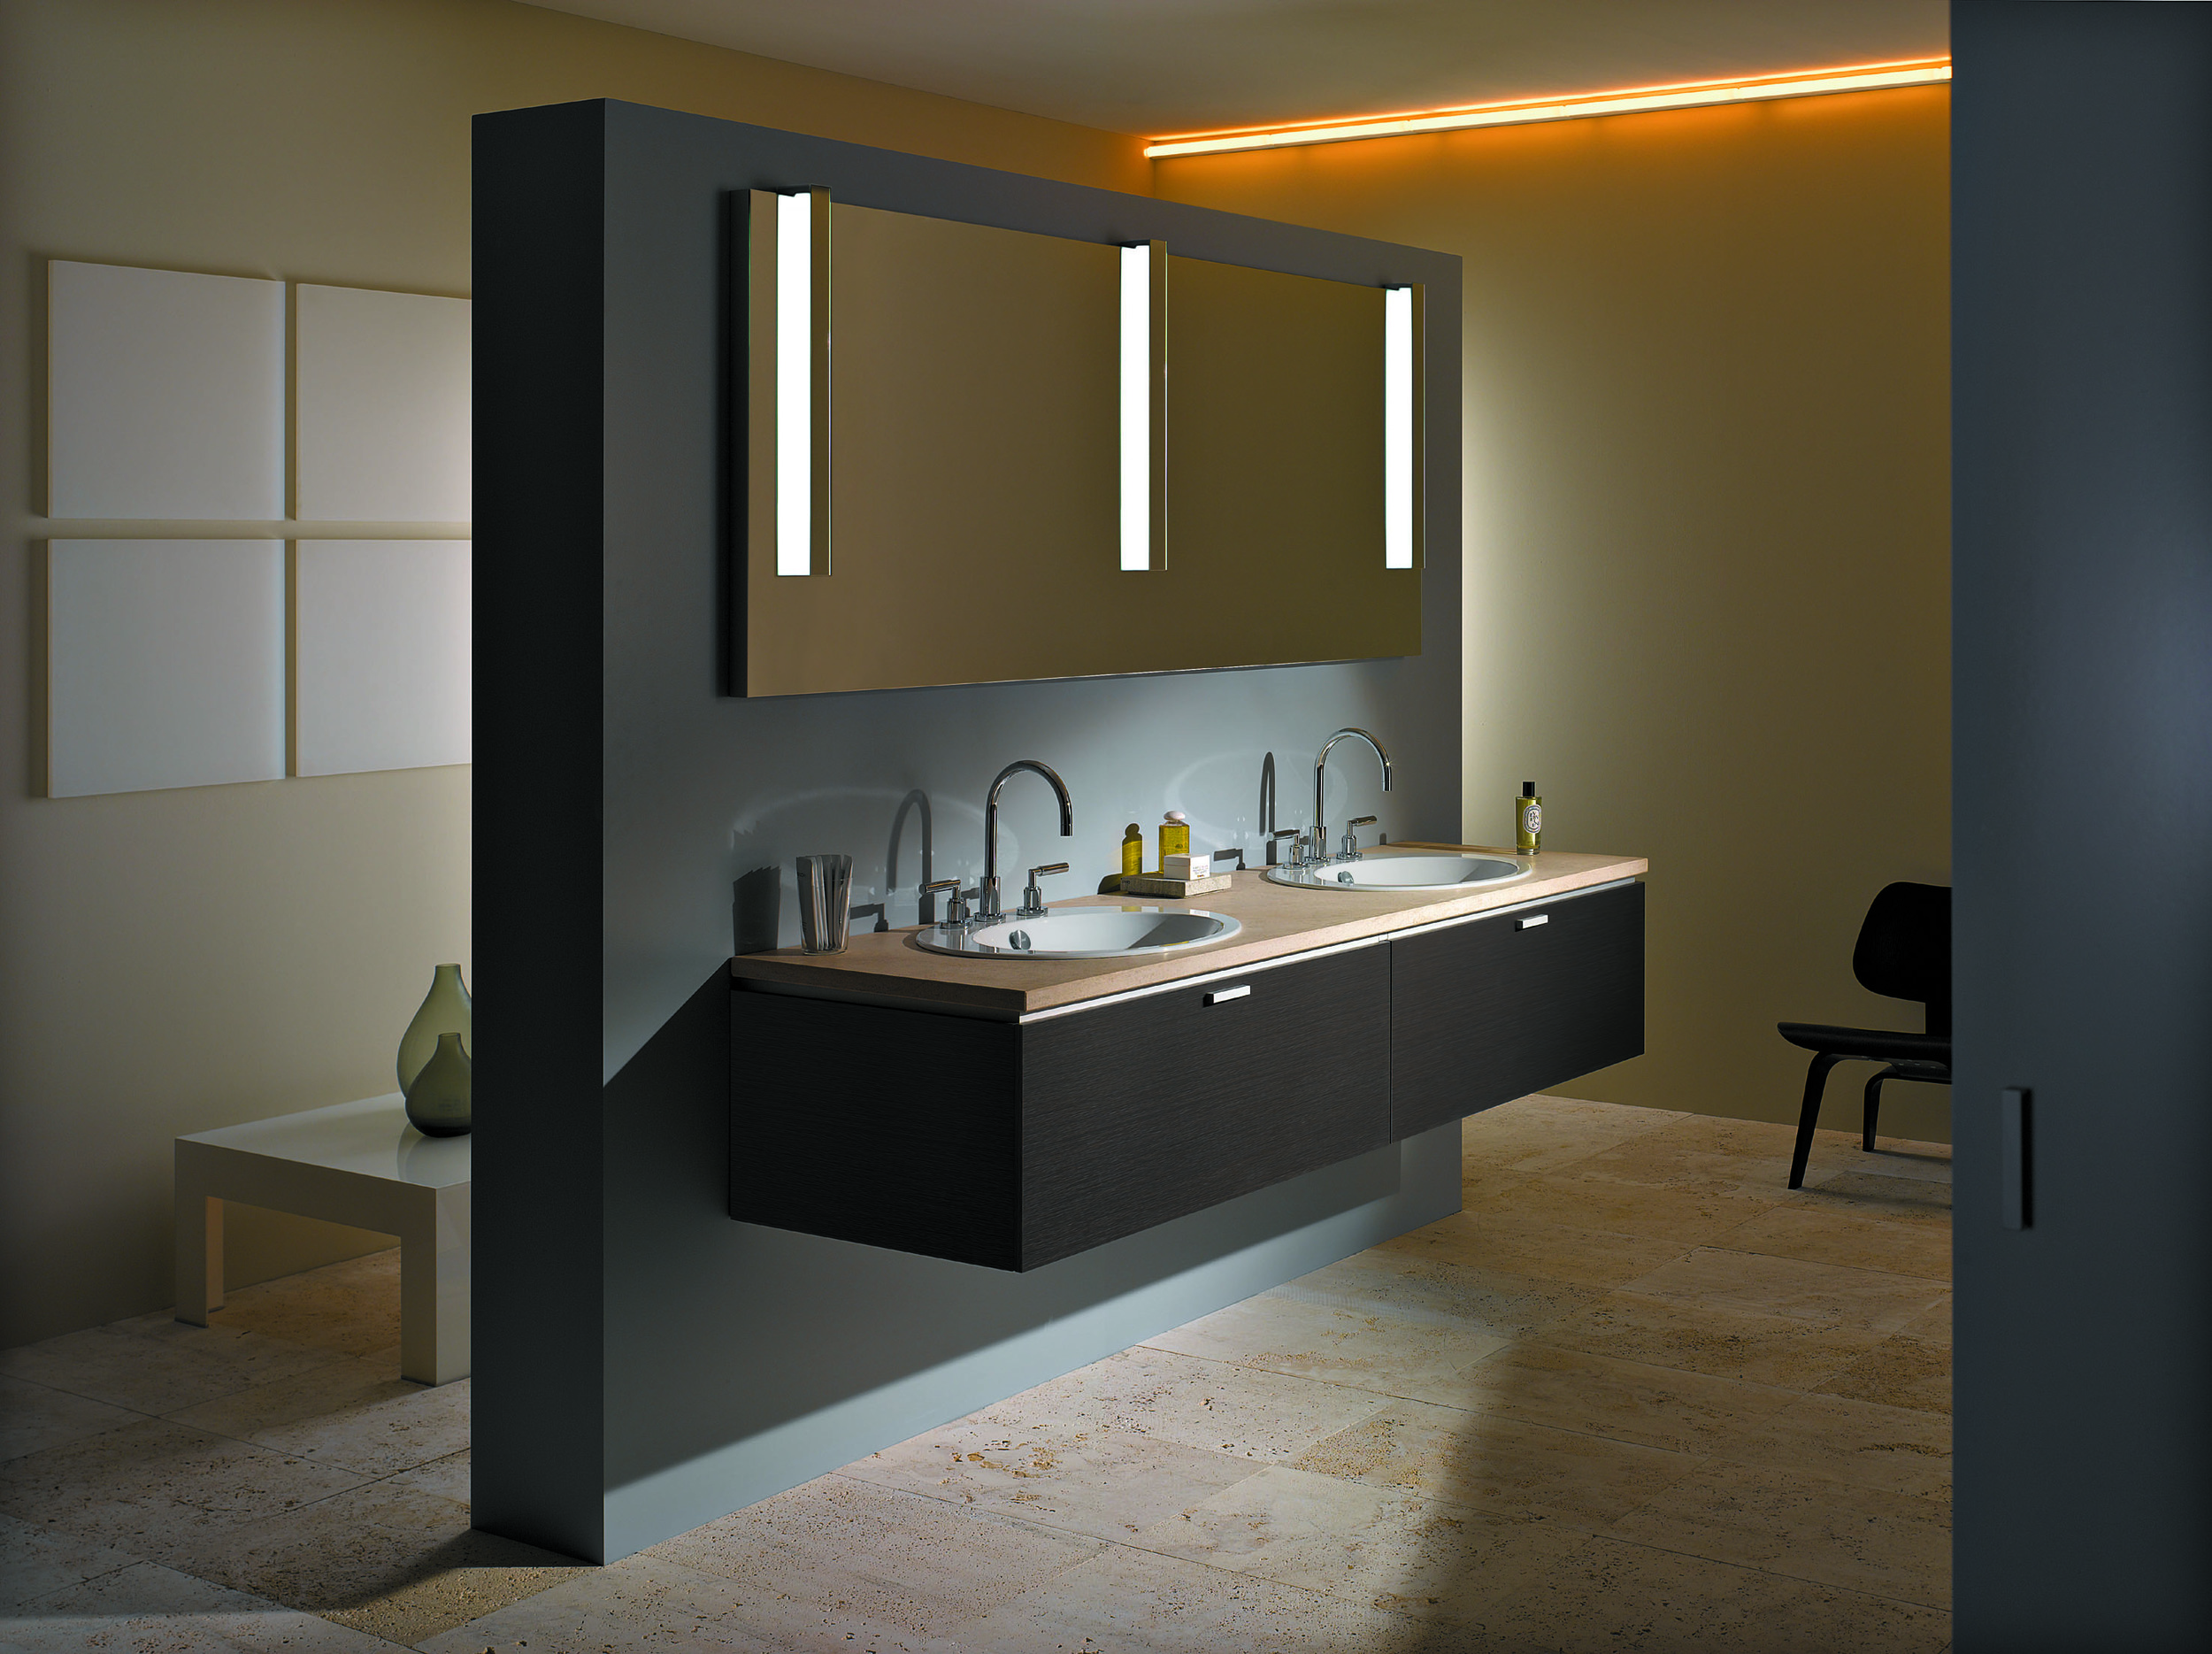 Alape double basin and furniture image (small).jpg